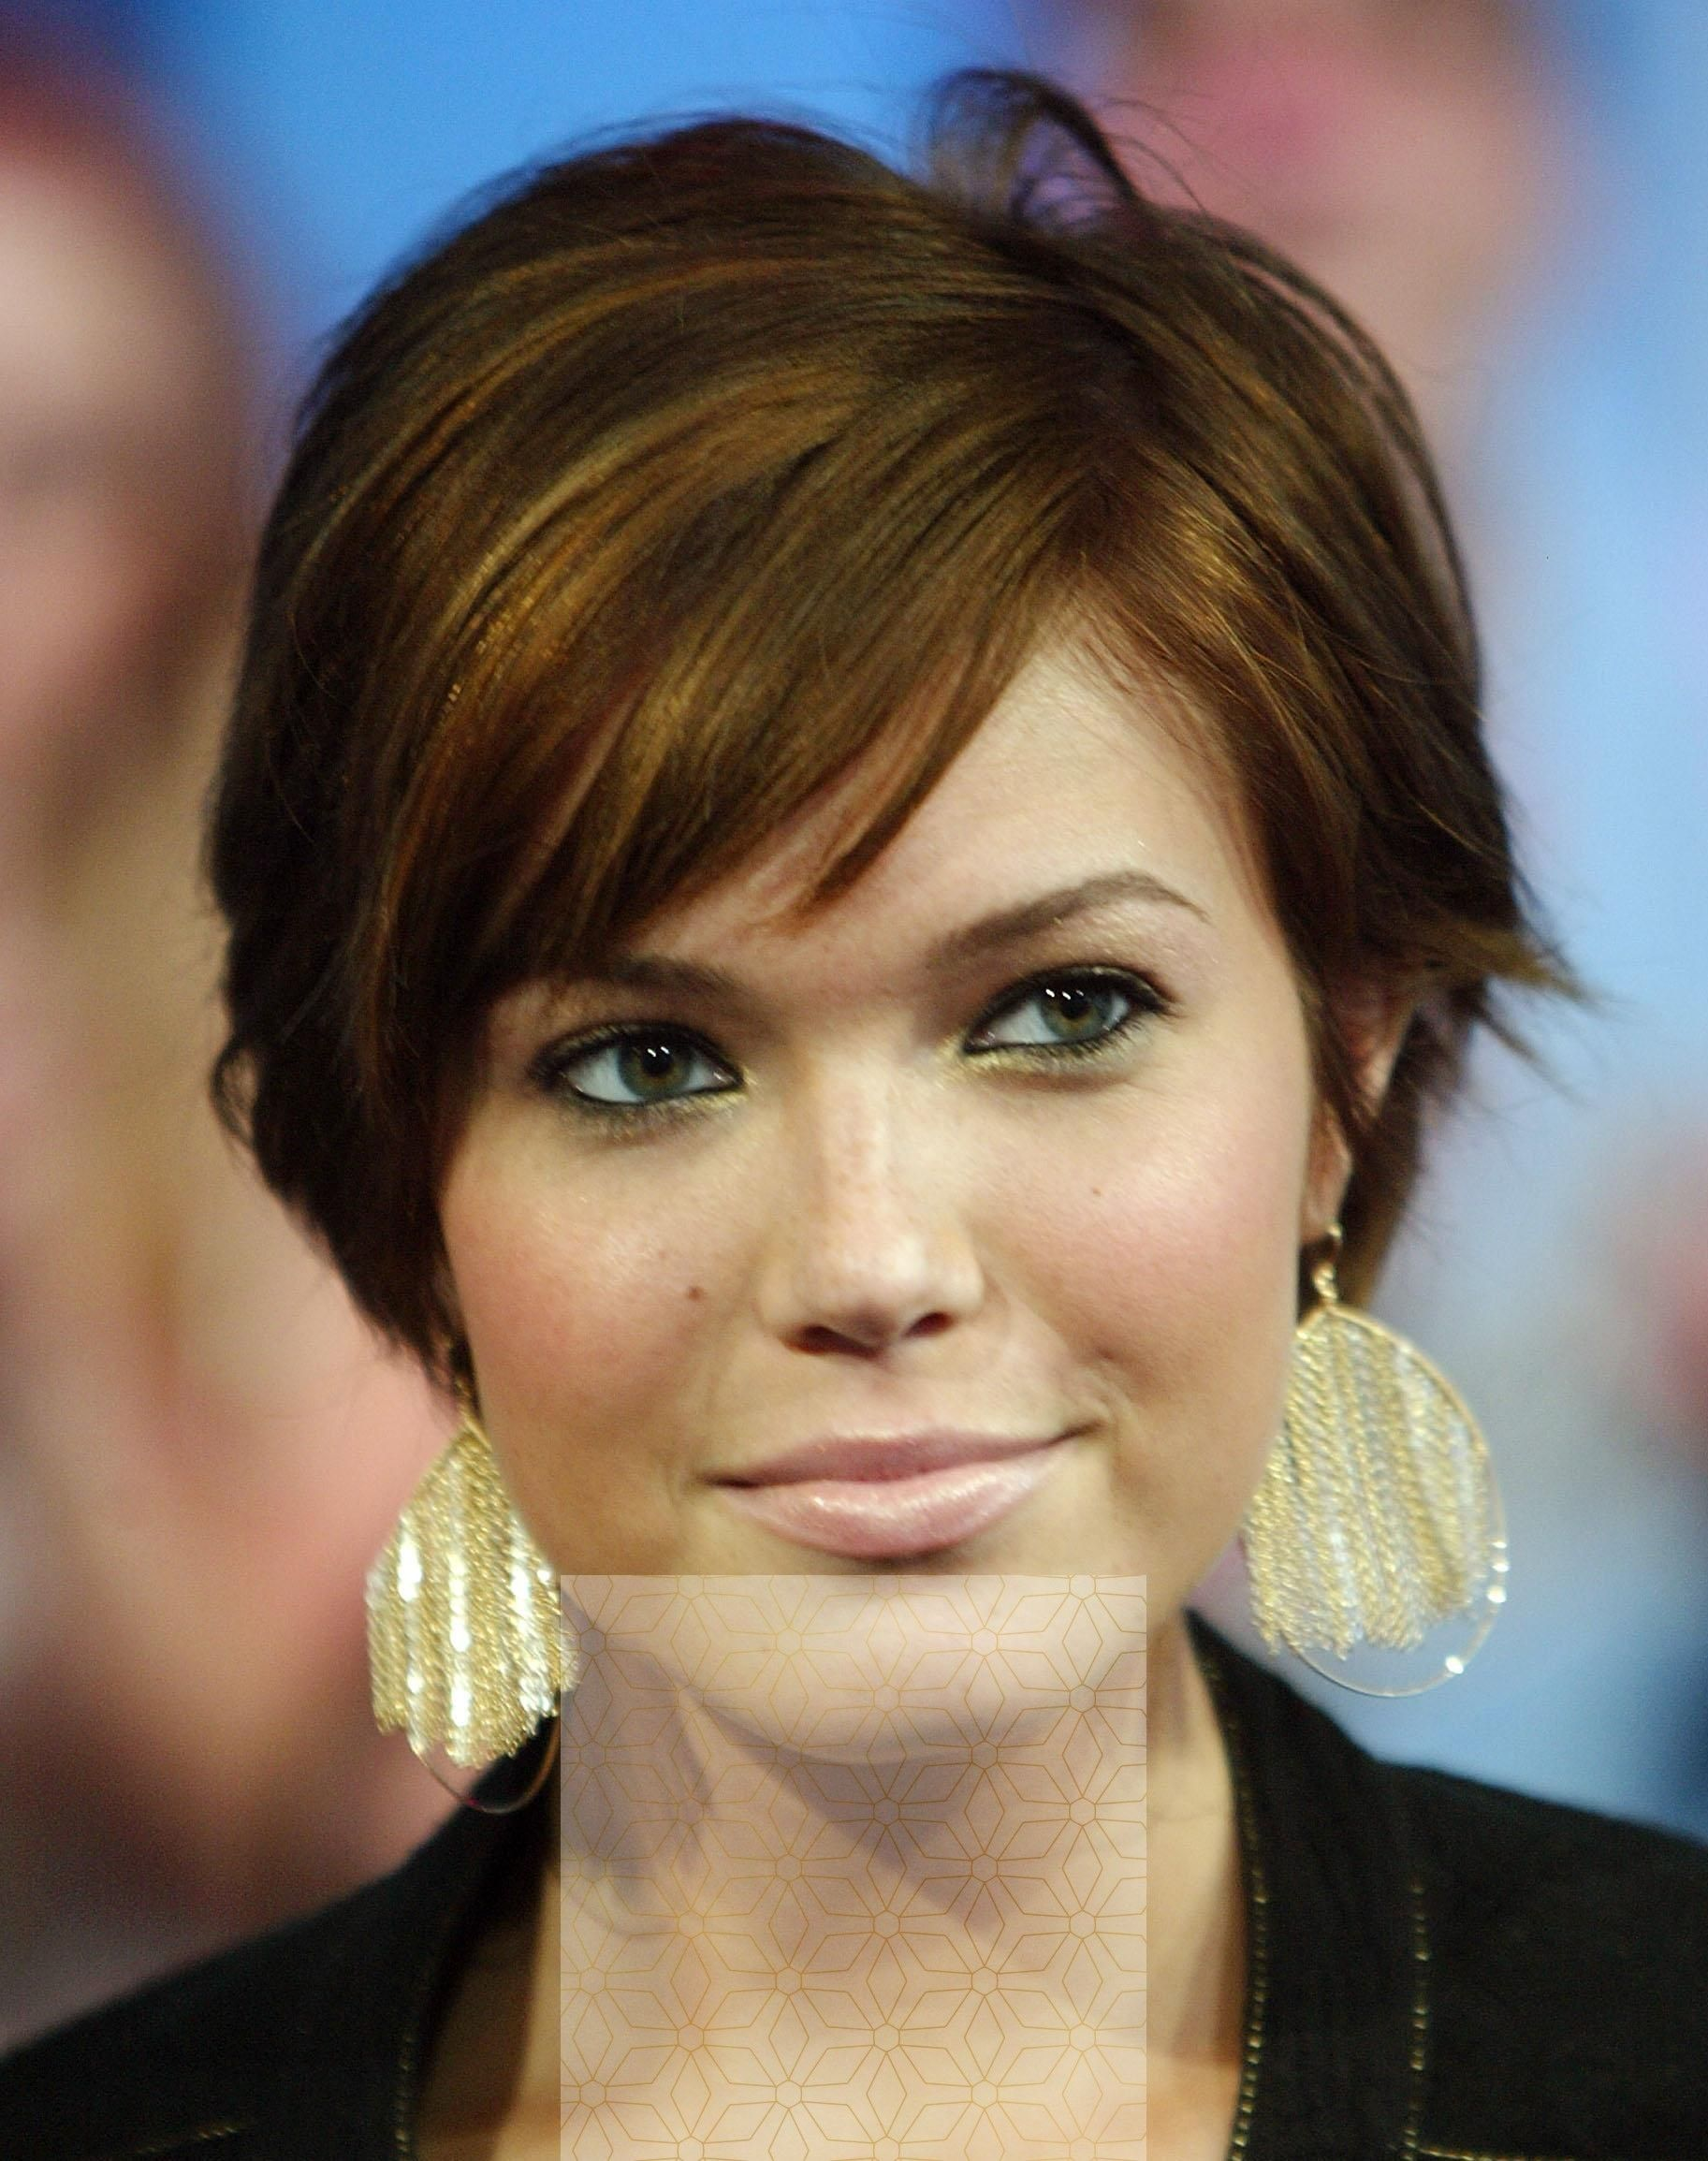 15+ daunting women hairstyles party ideas | women hairstyles